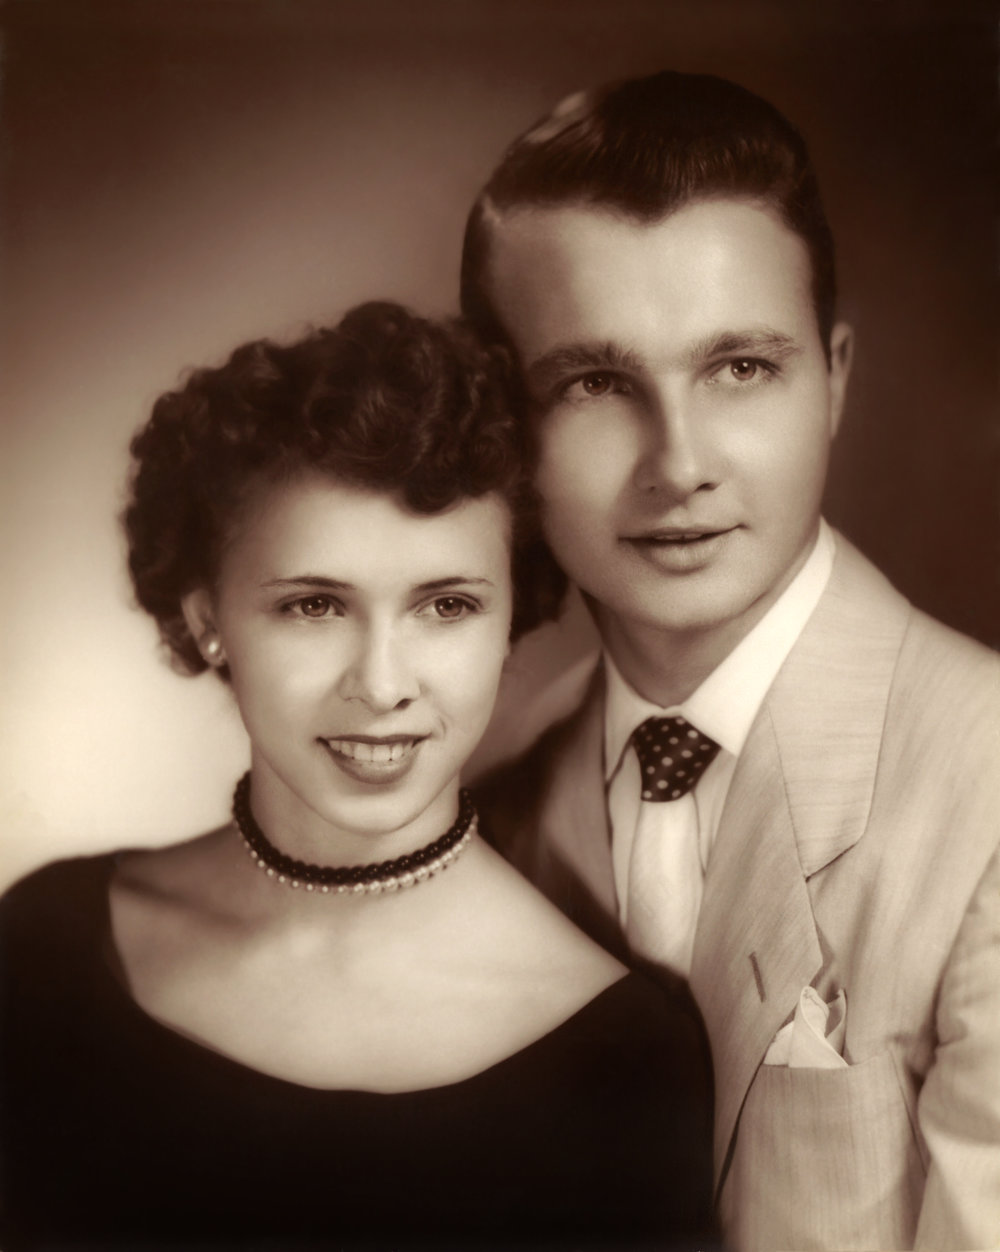 My Grandparents before they were married. Straight off of the silver screen I swear!